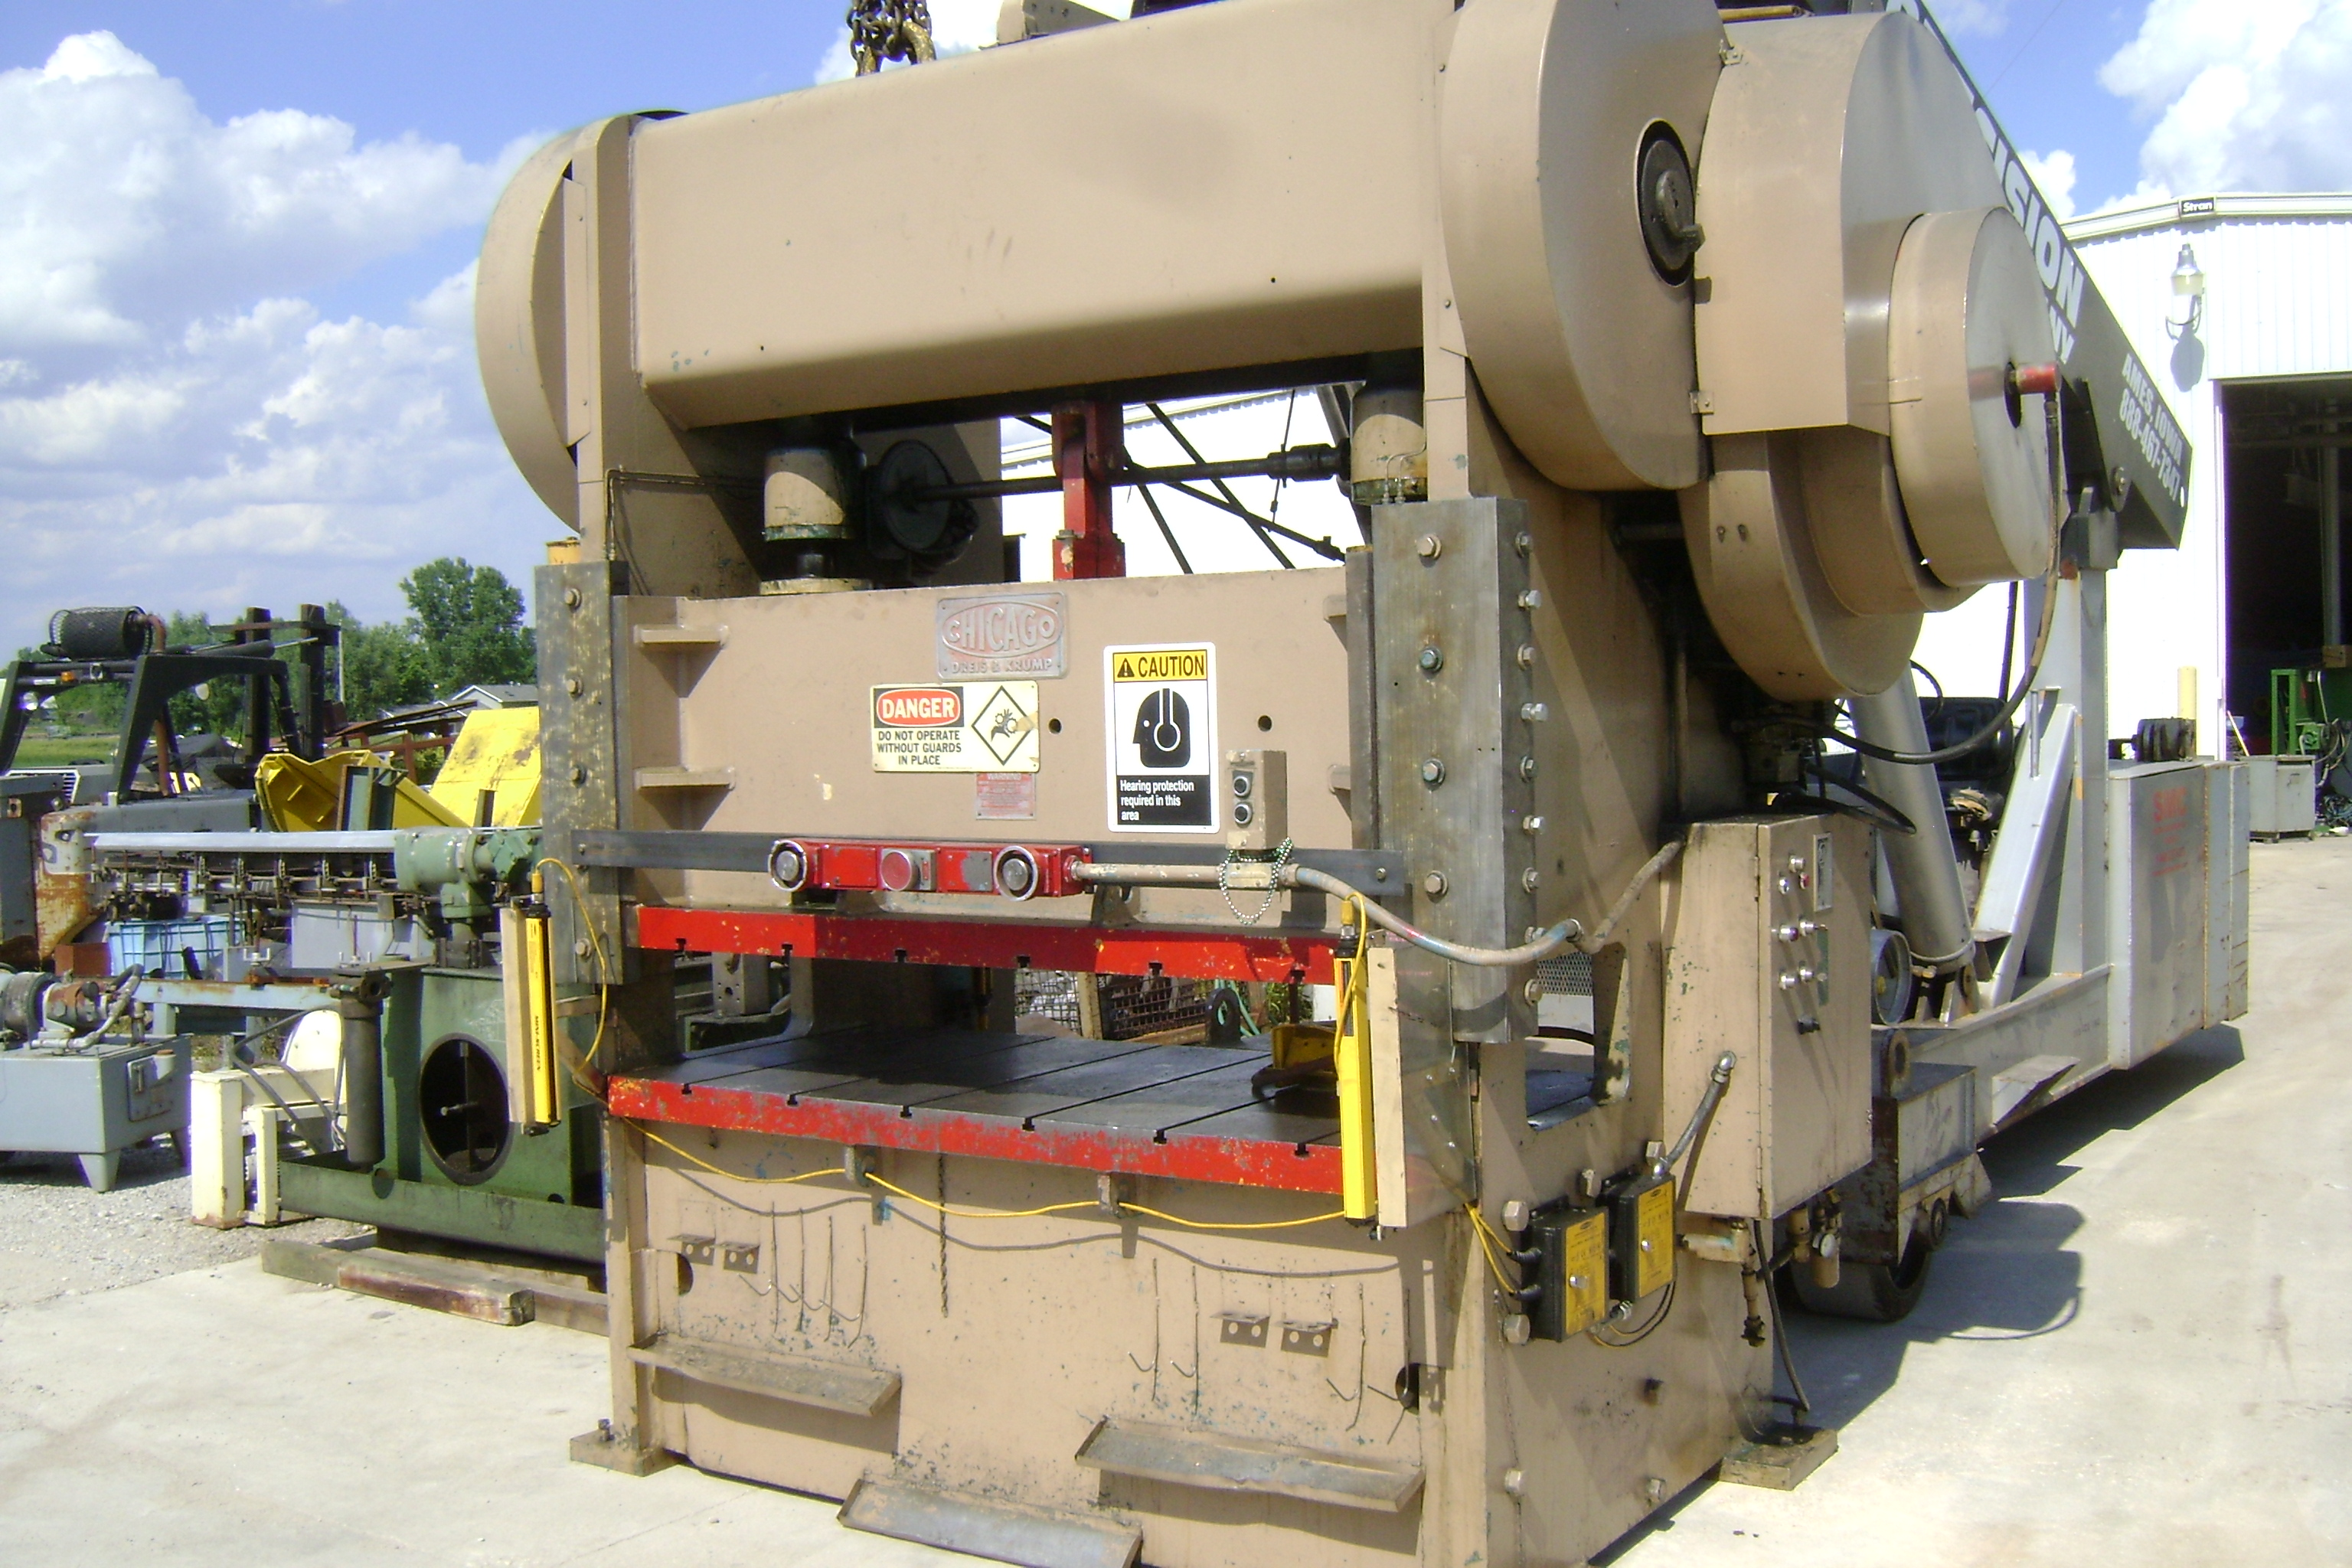 1 - PREOWNED CHICAGO DRIES & KRUMP 150 TON STRAIGHT SIDE <br>PRESS, MODEL #: SS-150-36-72, S/N: P9252, YEAR: 1967